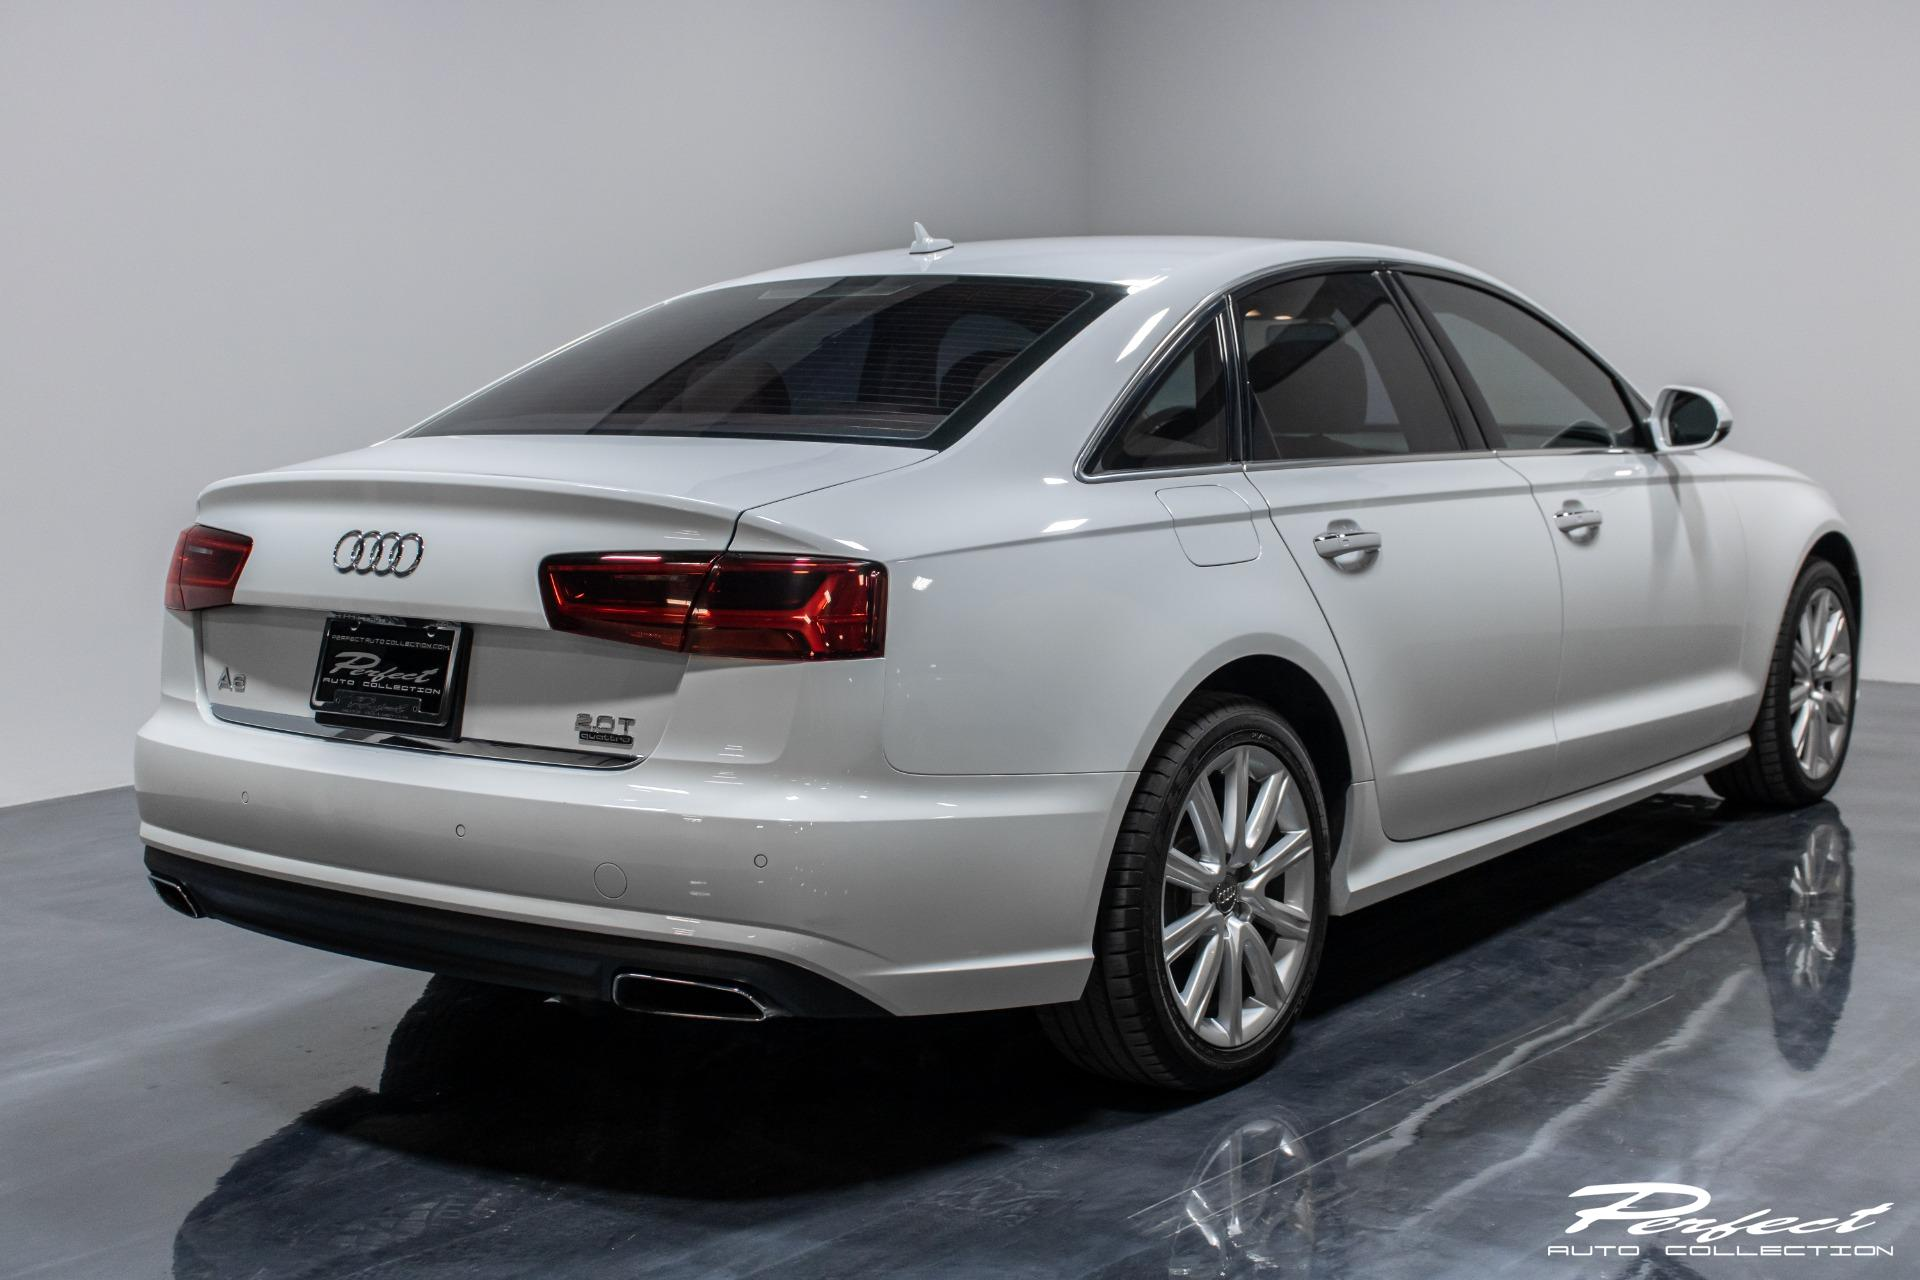 Used 2016 Audi A6 2.0T Premium Plus Sedan 4D for sale Sold at Perfect Auto Collection in Akron OH 44310 4